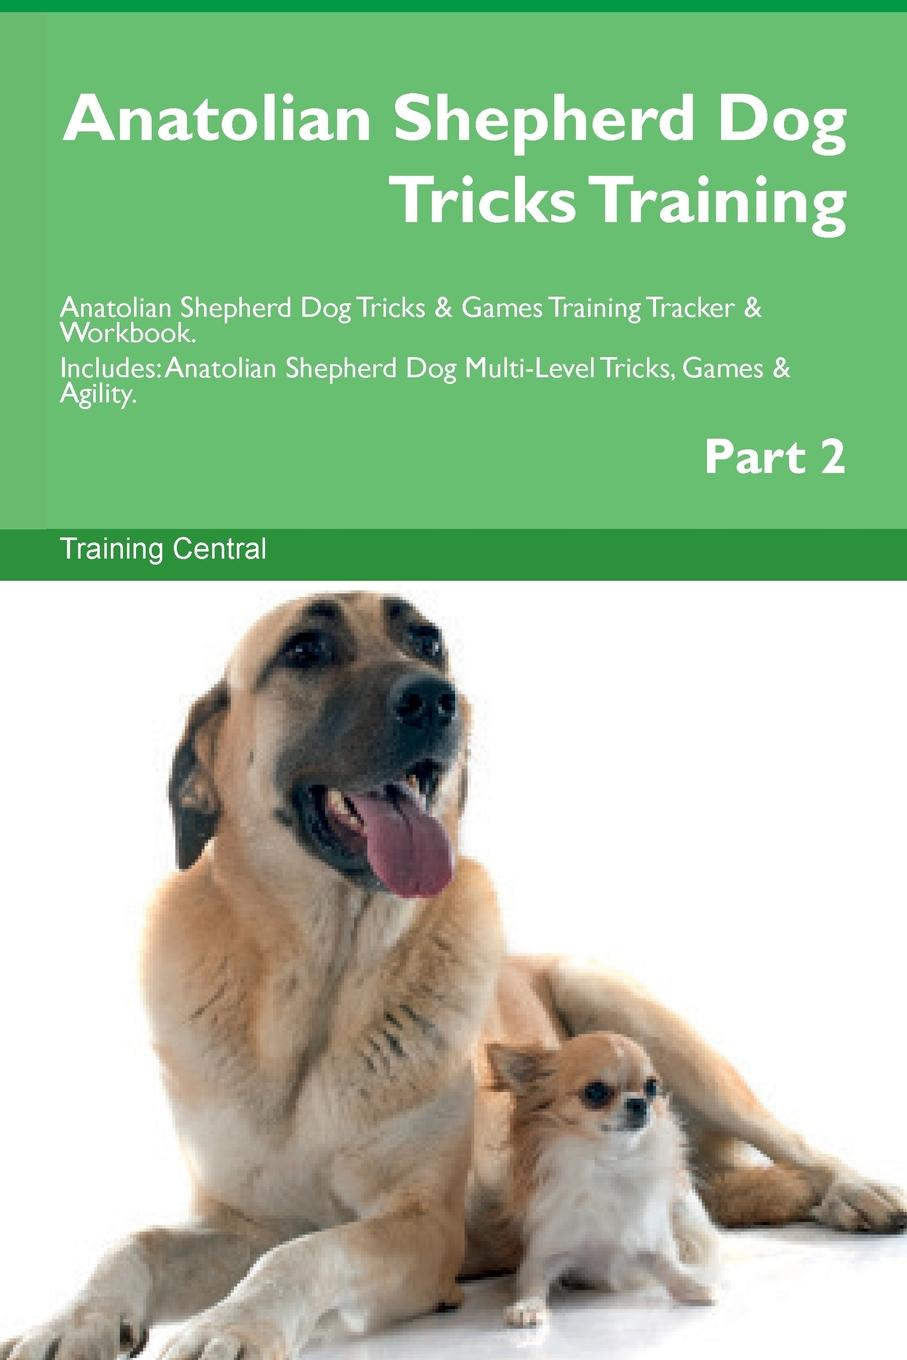 Training Central Anatolian Shepherd Dog Tricks Training Anatolian Shepherd Dog Tricks . Games Training Tracker . Workbook. Includes. Anatolian Shepherd Dog Multi-Level Tricks, Games . Agility. Part 2 this book loves you